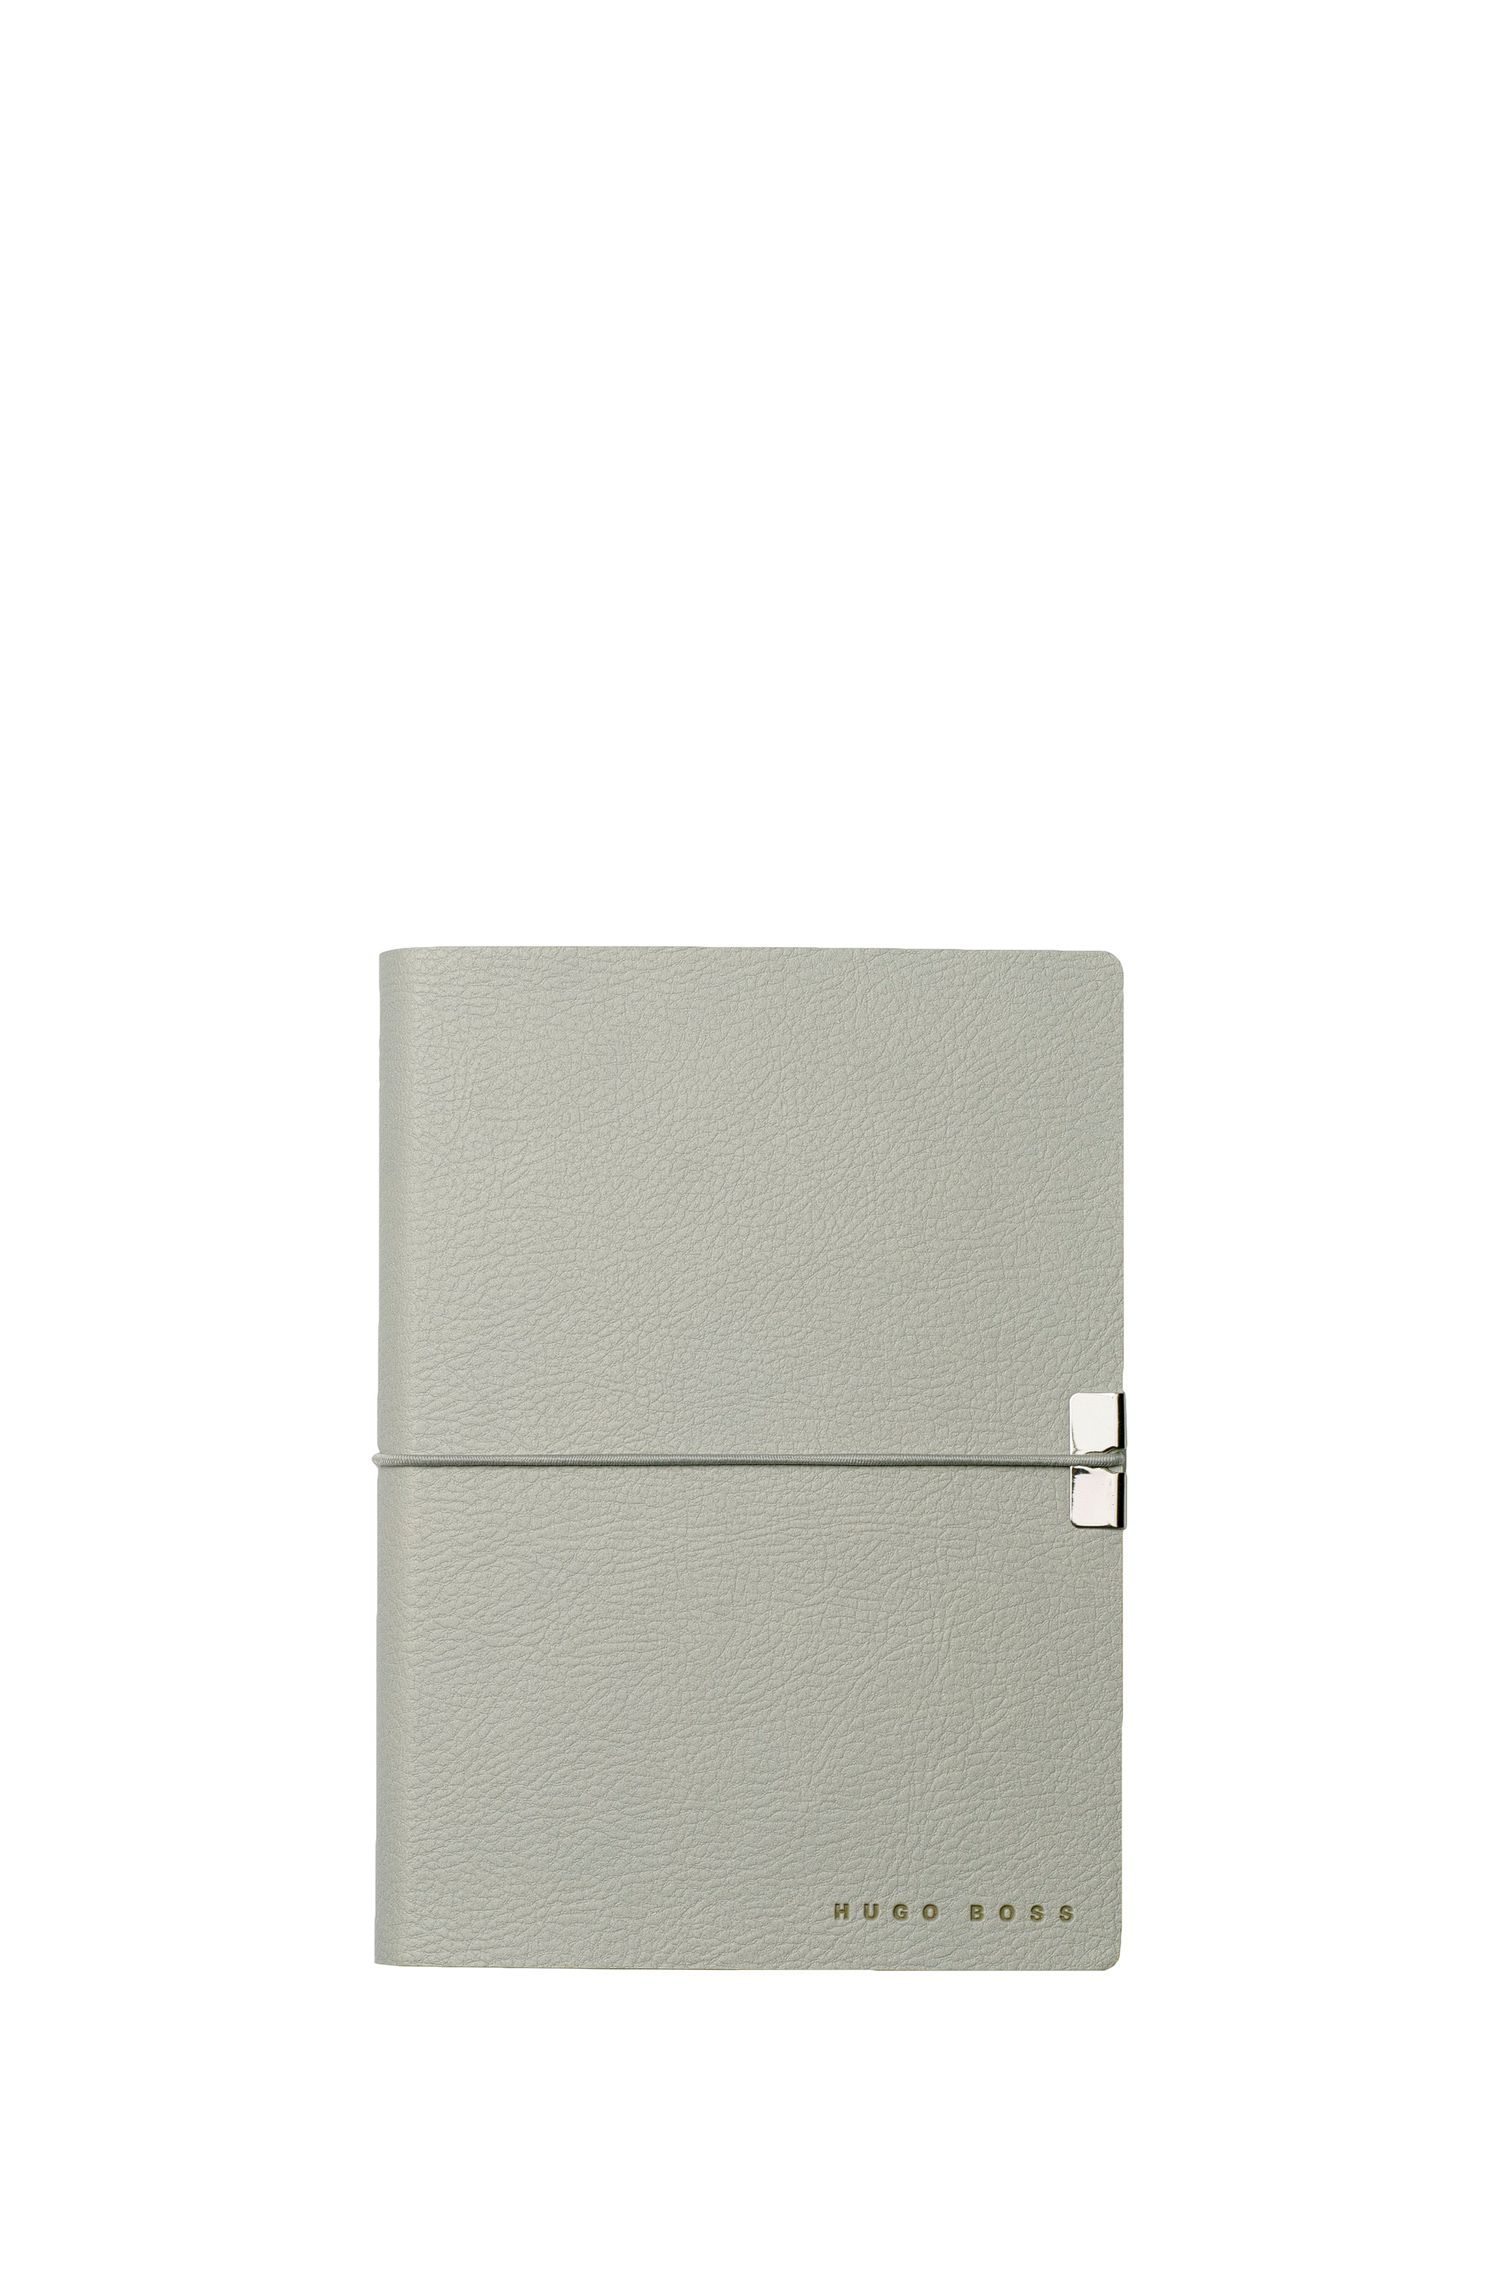 A6 light-grey faux leather notepad